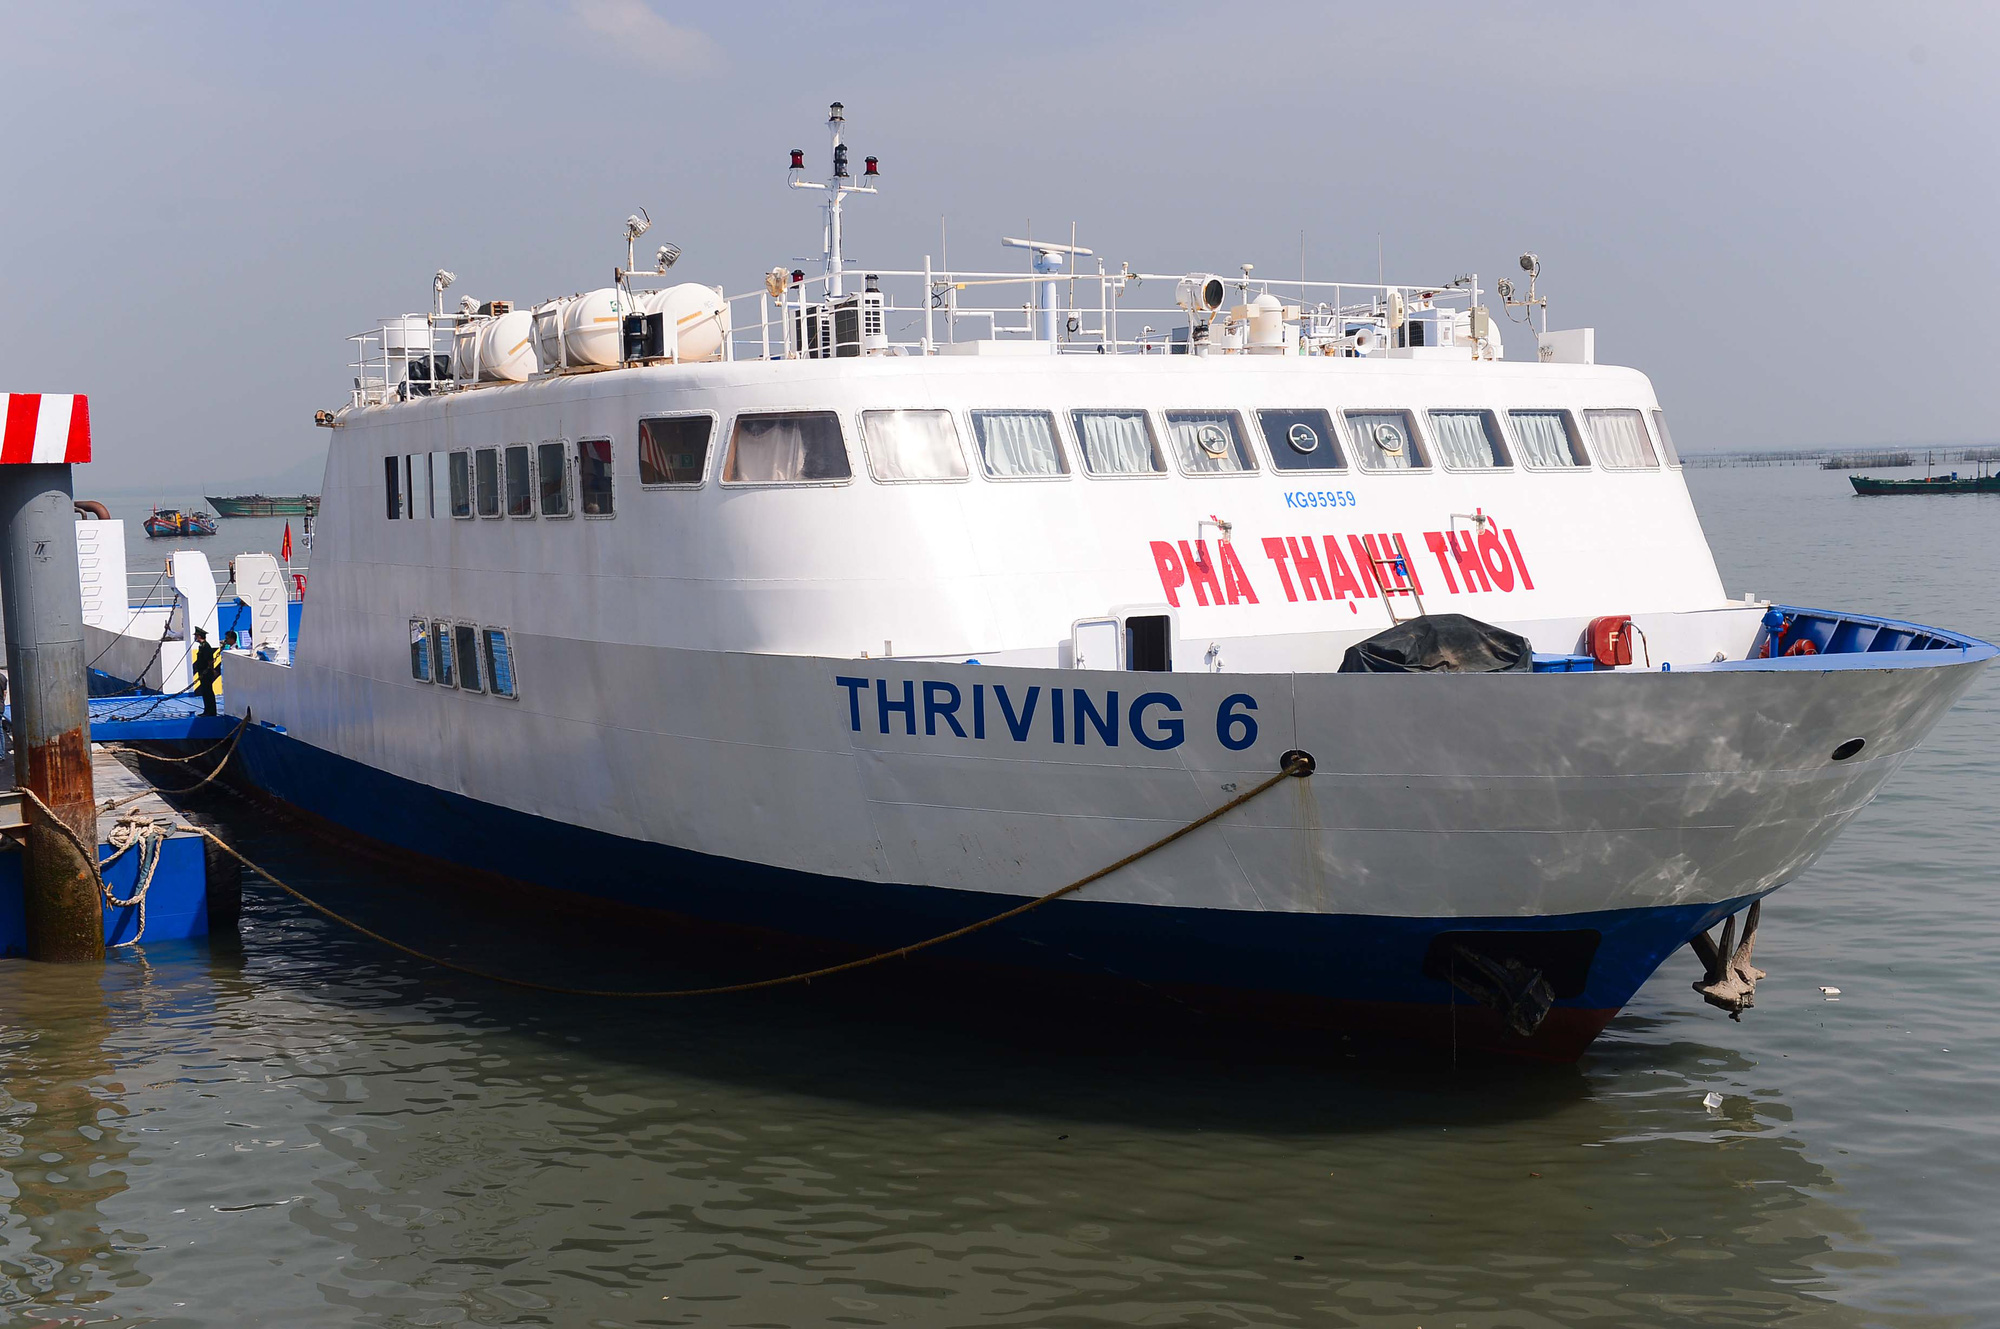 <em>A ferry of the Can Gio-Vung Tau route docks at a wharf on January 4, 2021. Photo:</em> Quang Dinh / Tuoi Tre